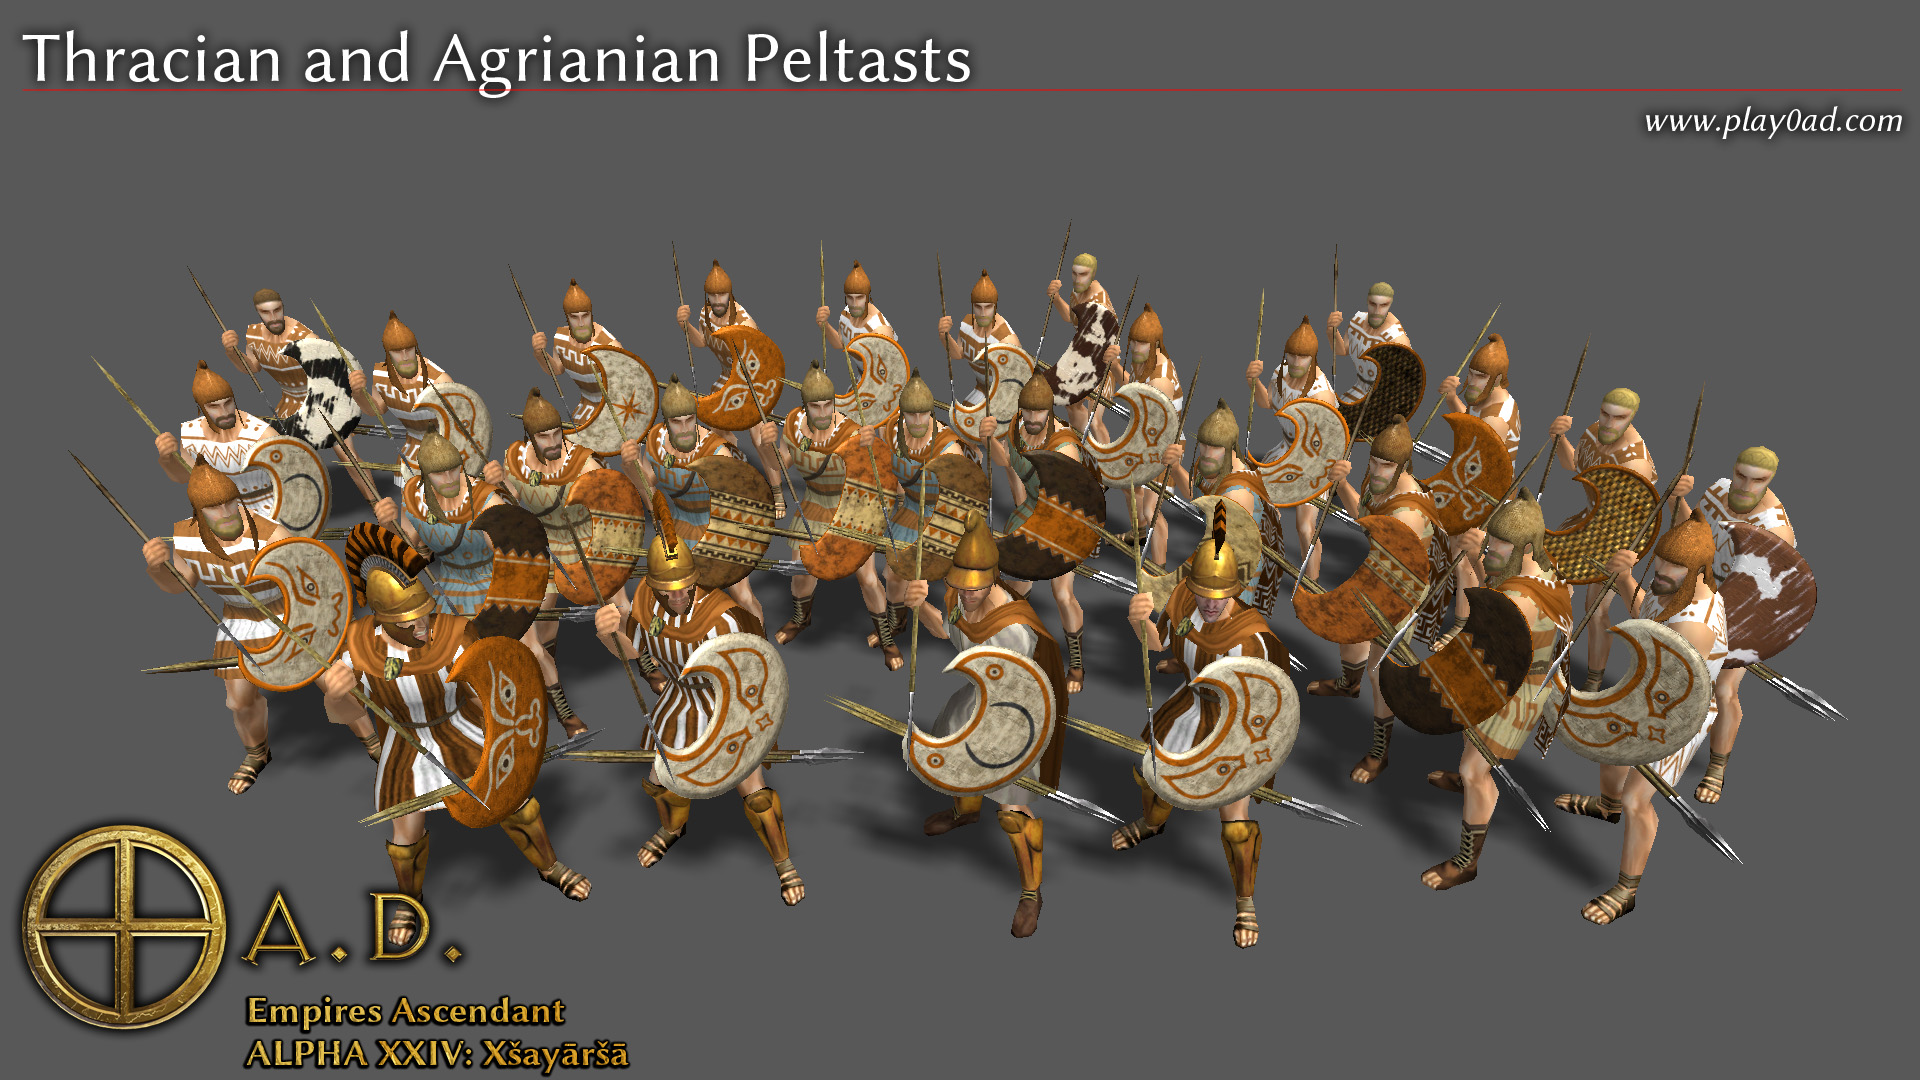 Thracian and Agrianian Peltasts